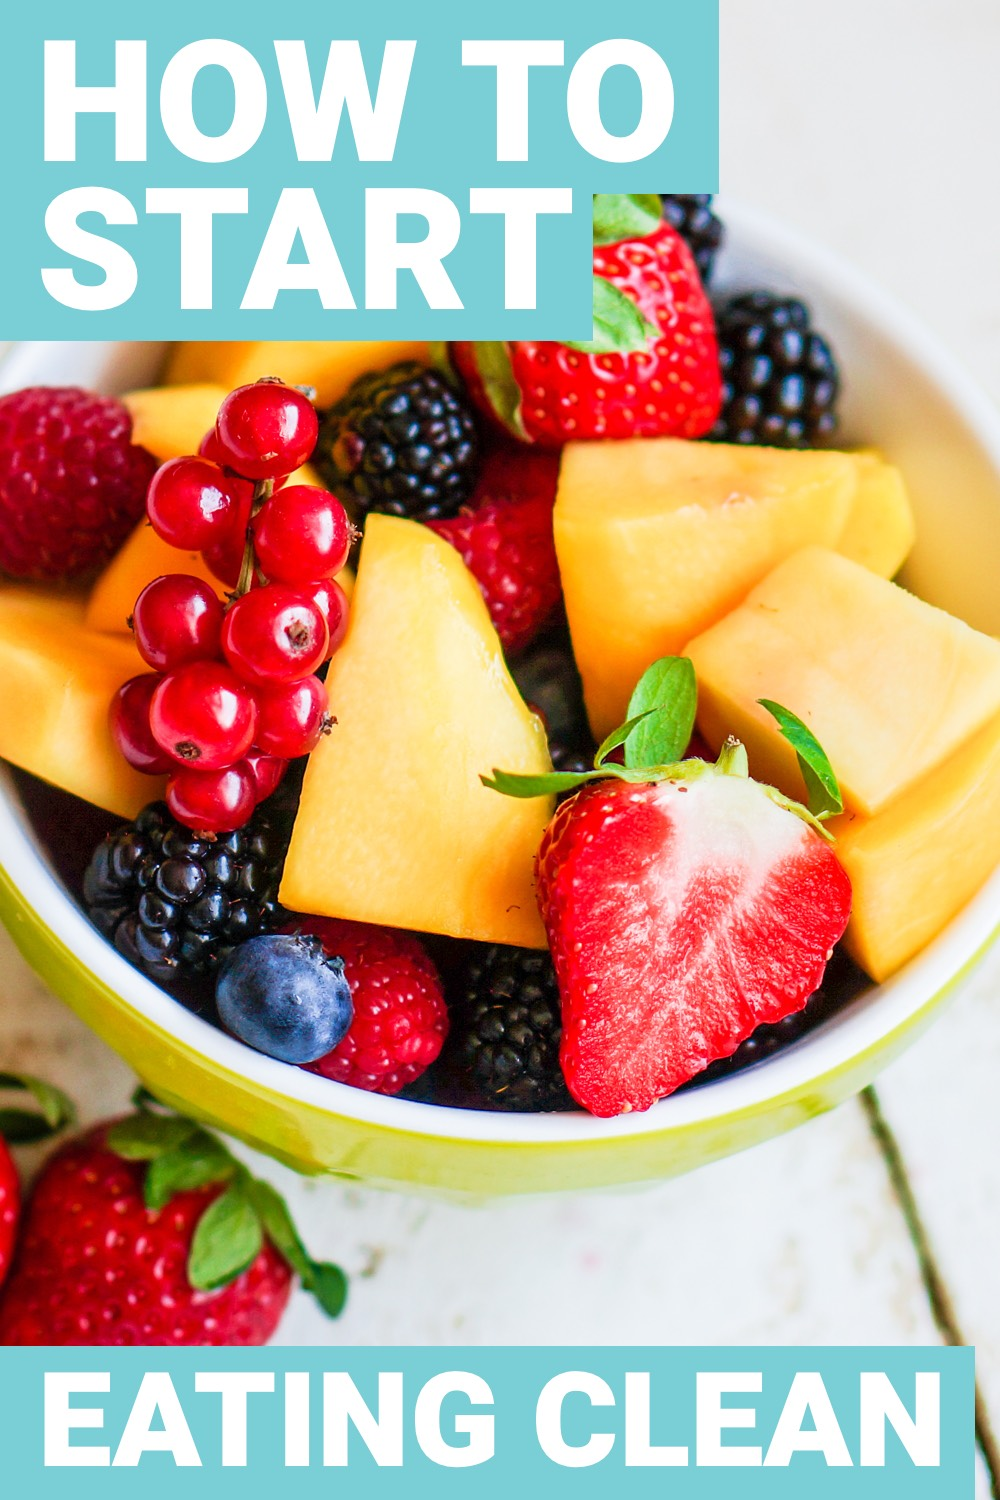 Clean eating is a great way to ensure you keep toxins out of your body. However, a lot of people find that sticking with clean eating can be hard. Here are some clean eating tips for beginners.